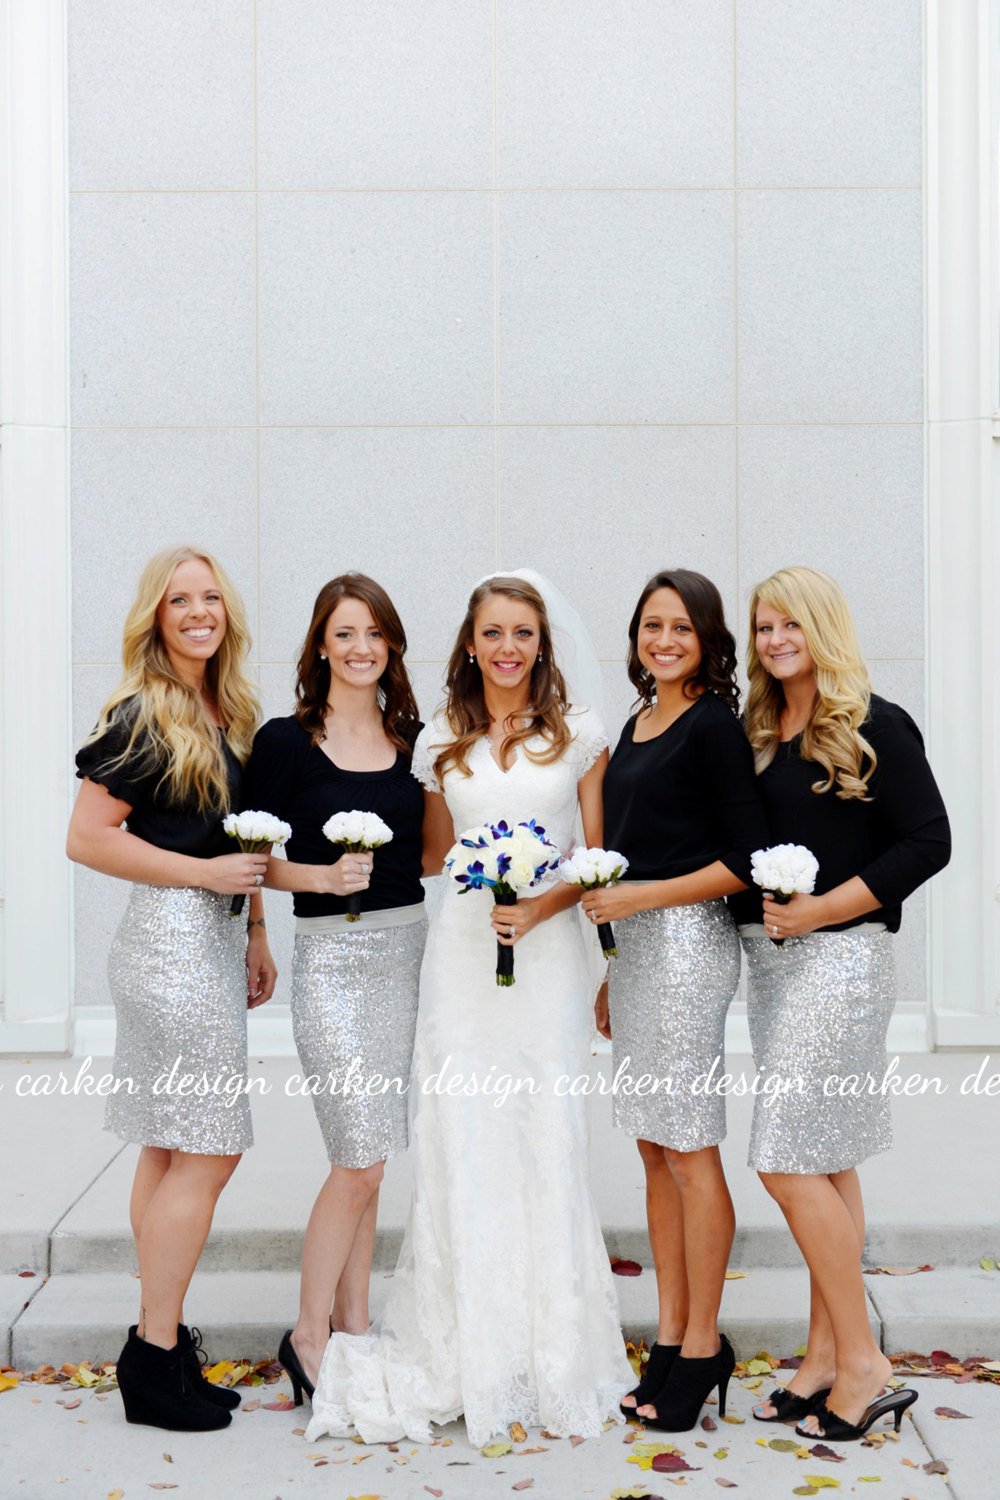 carkendesign sequin bridesmaids skirts - Bridesmaids in Skirts